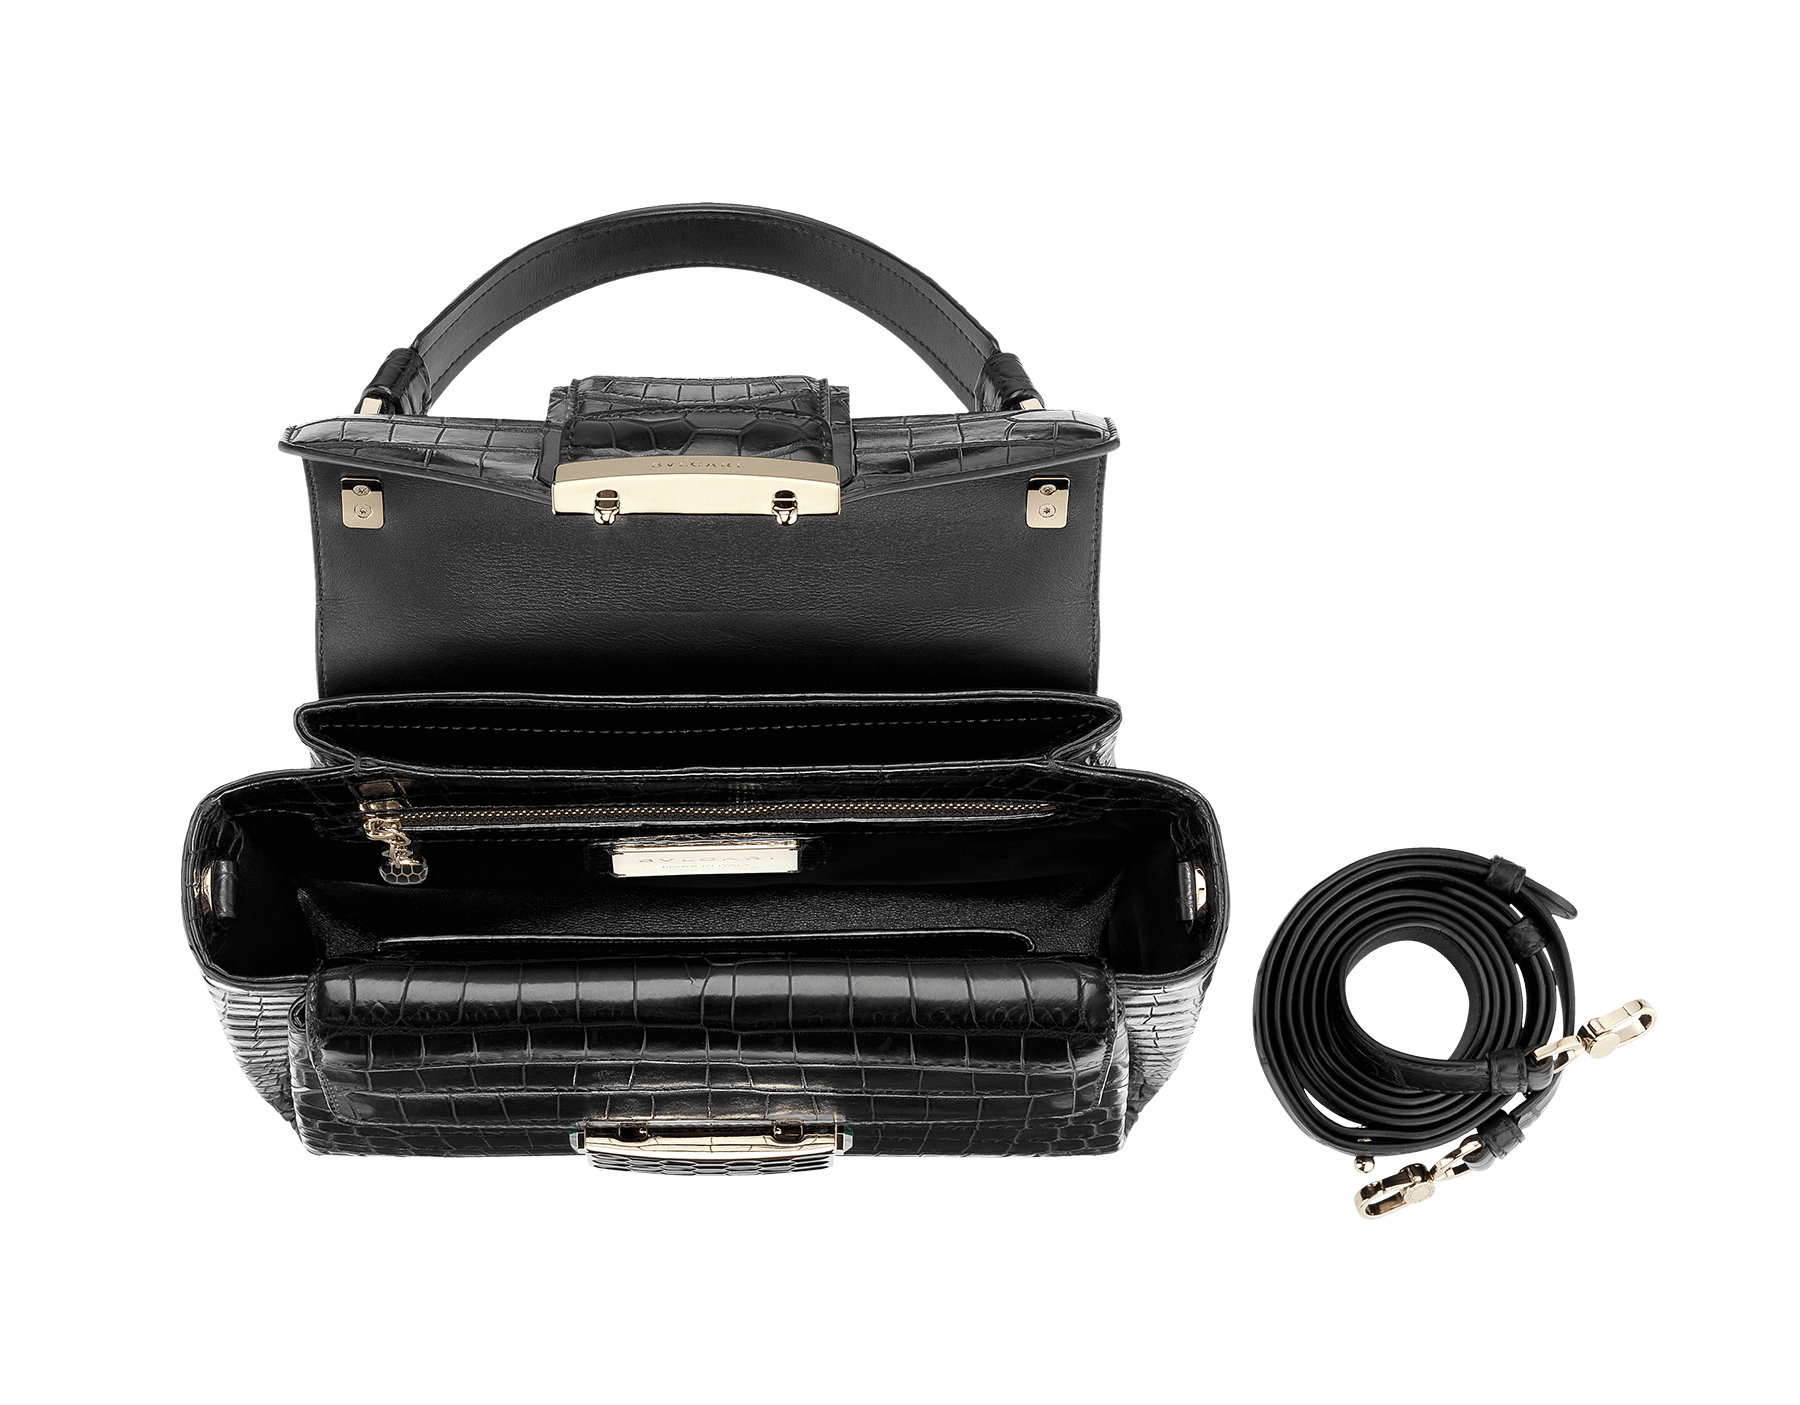 Top handle bag Serpenti Viper in black matt crocodile skin. Brass light gold plated hardware and snap closure in black shiny enamel with iconic Scaglie design. 284486 image 2